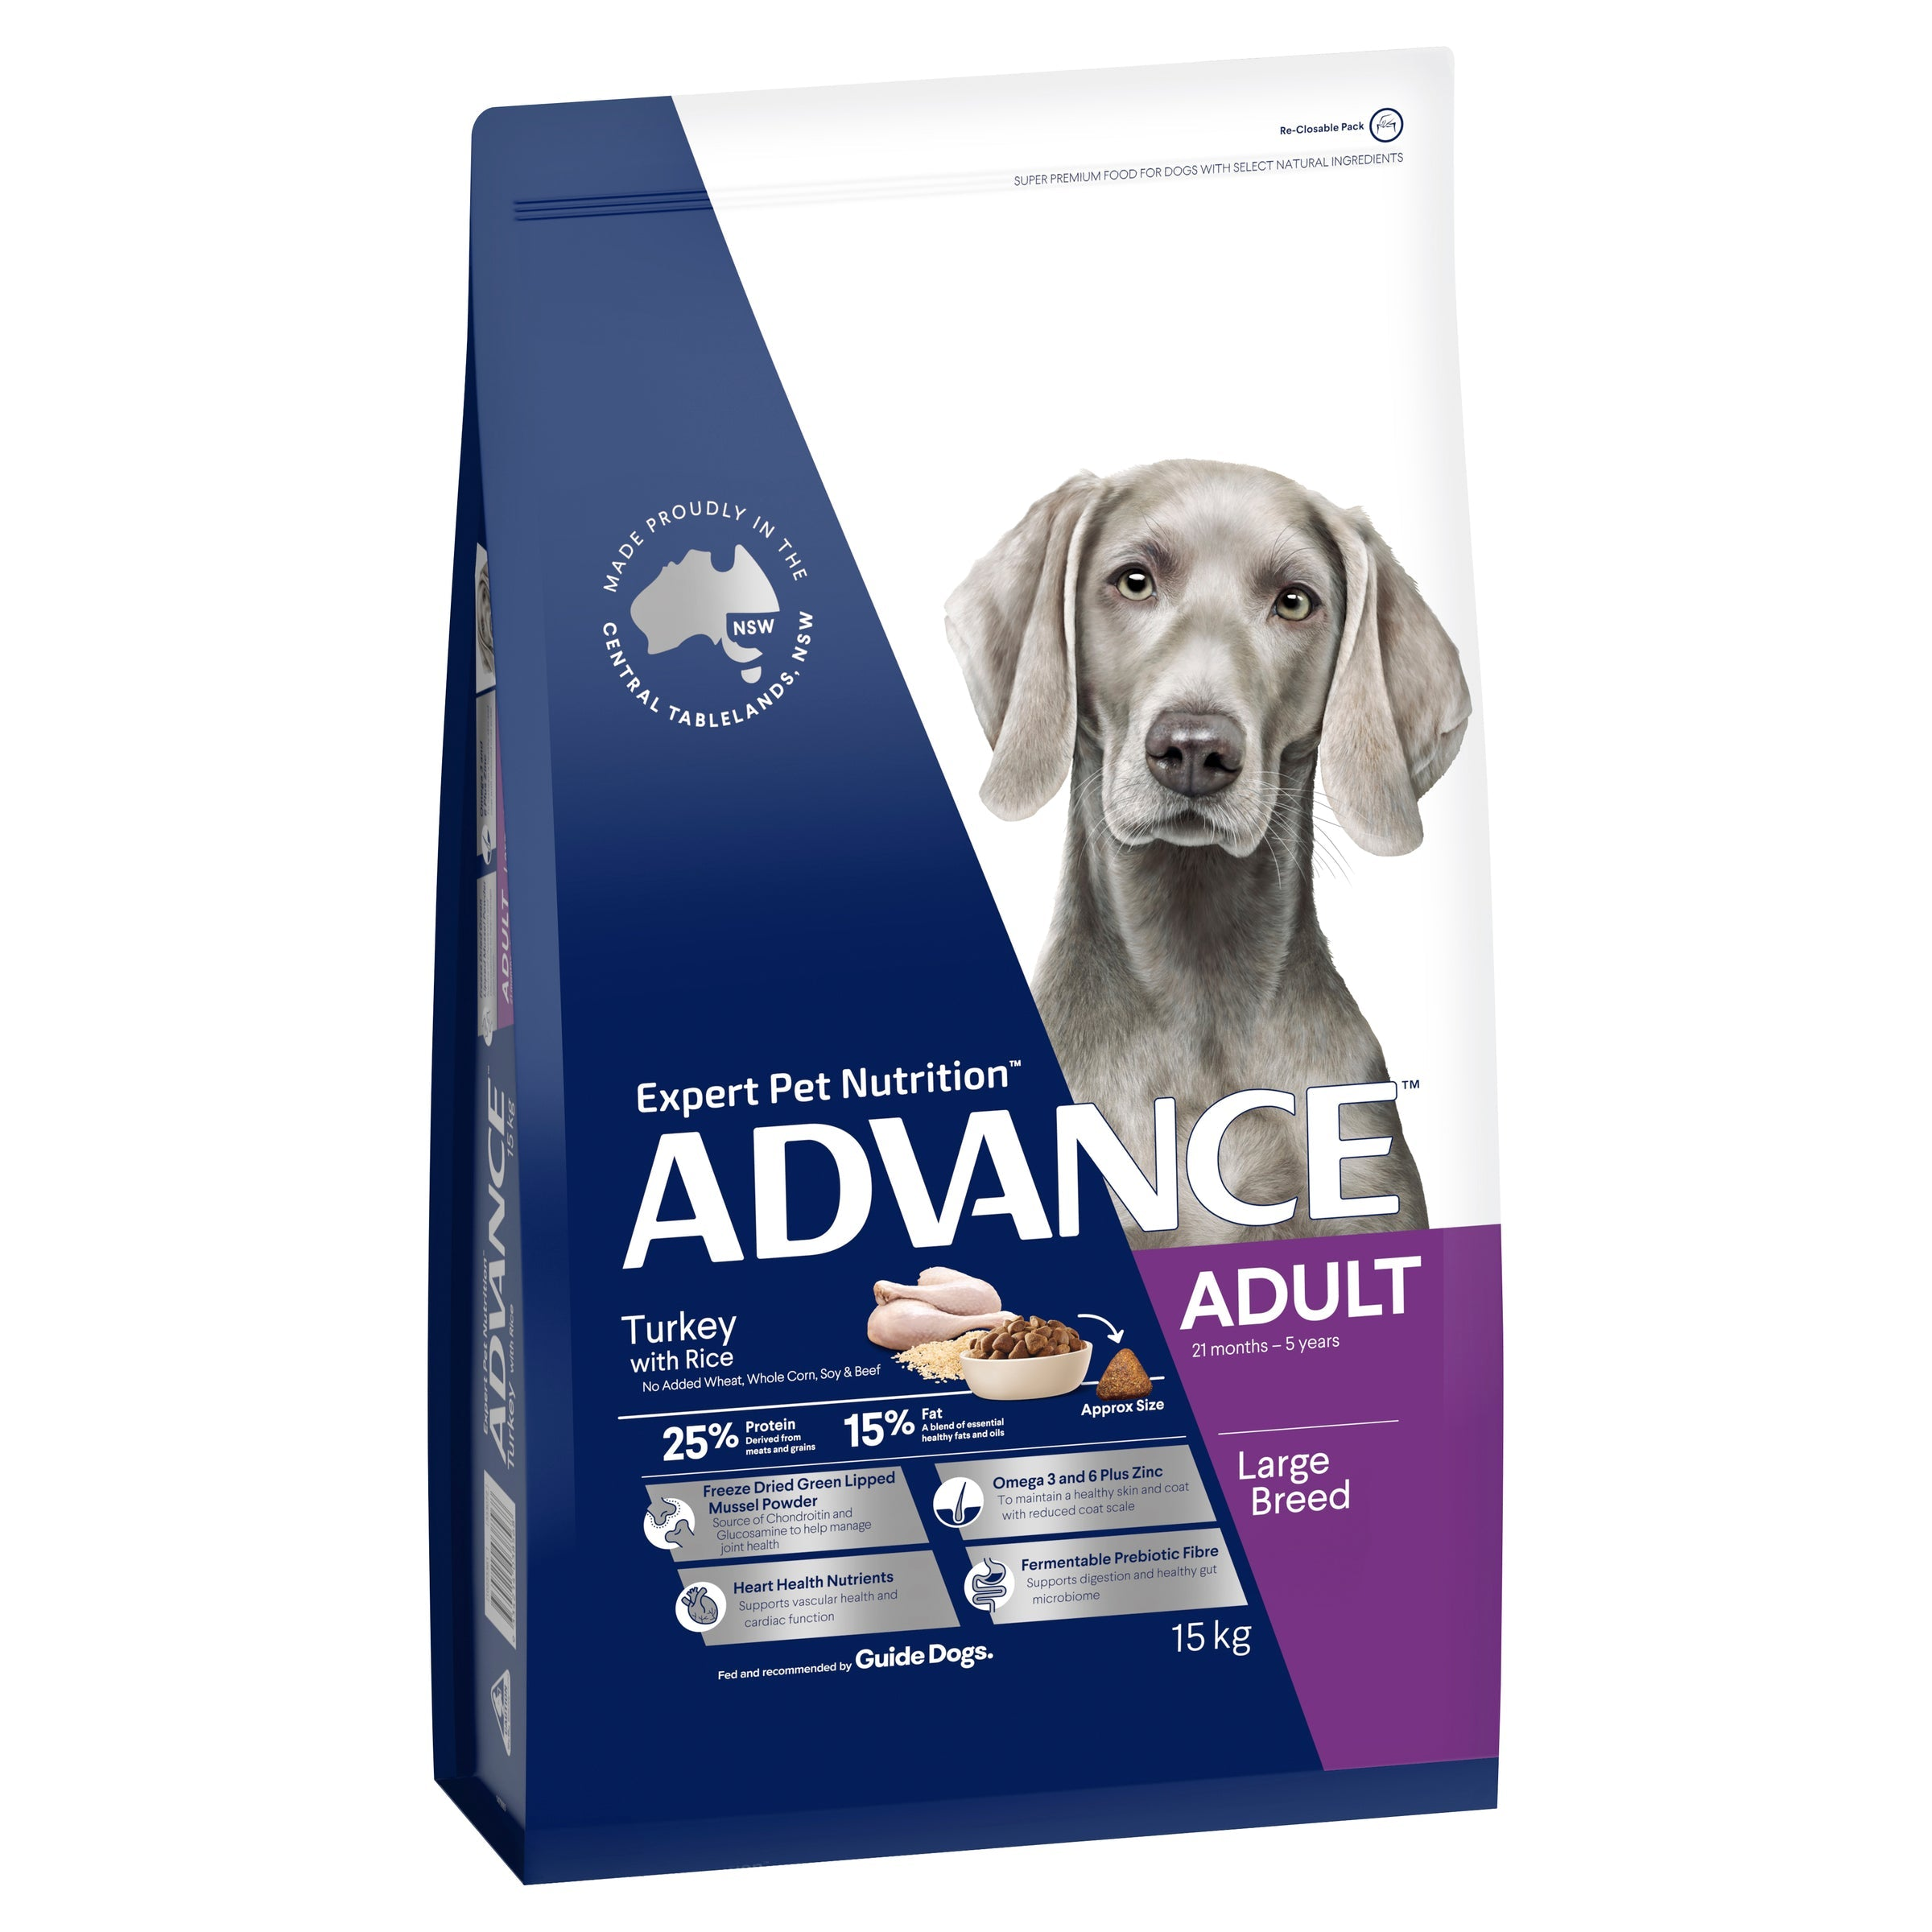 ADVANCE™ Adult Large Breed Turkey with Rice Dry Dog Food 15kg